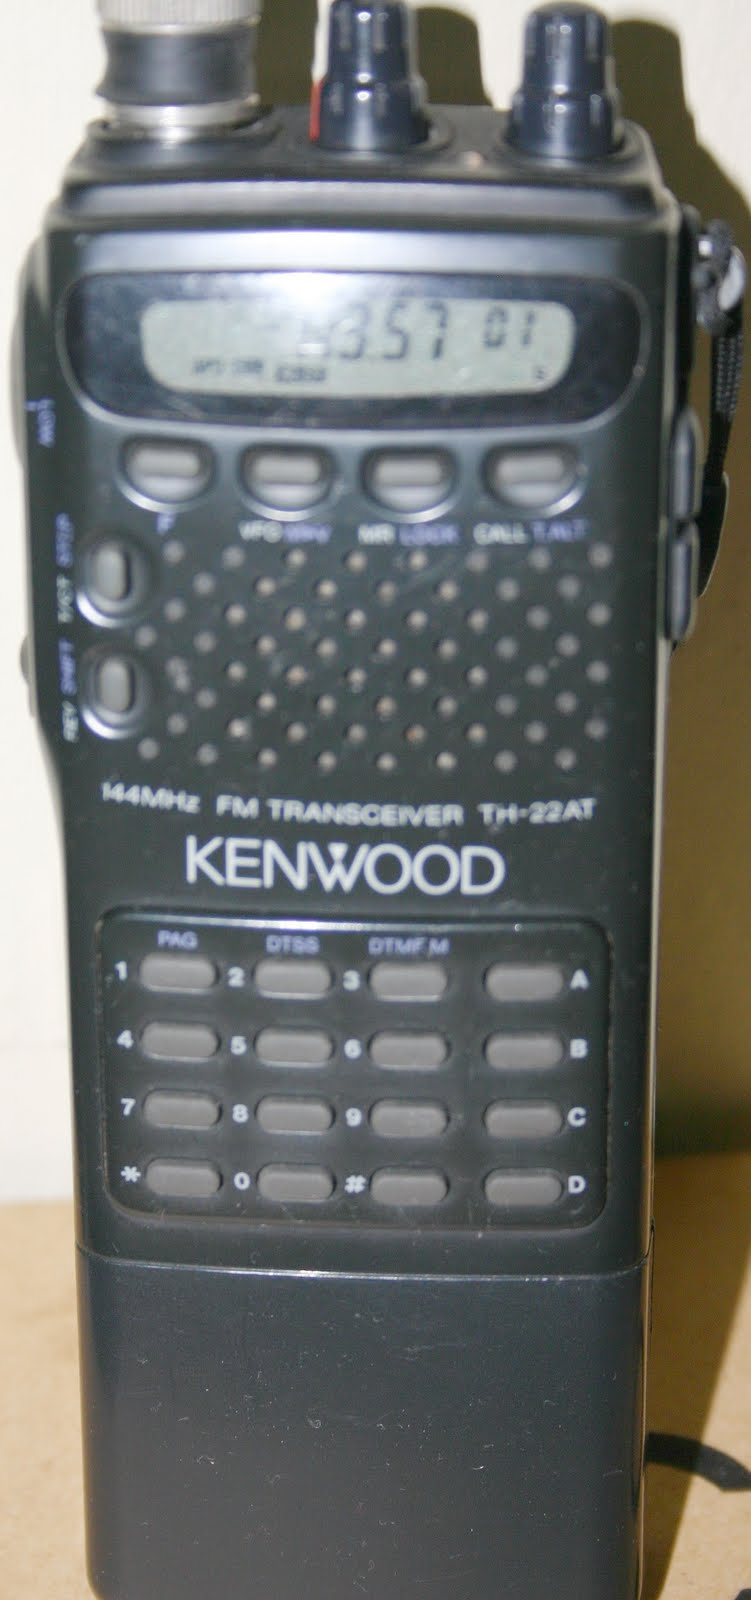 Radio Seller Ht Kenwood Th 22 At Sold